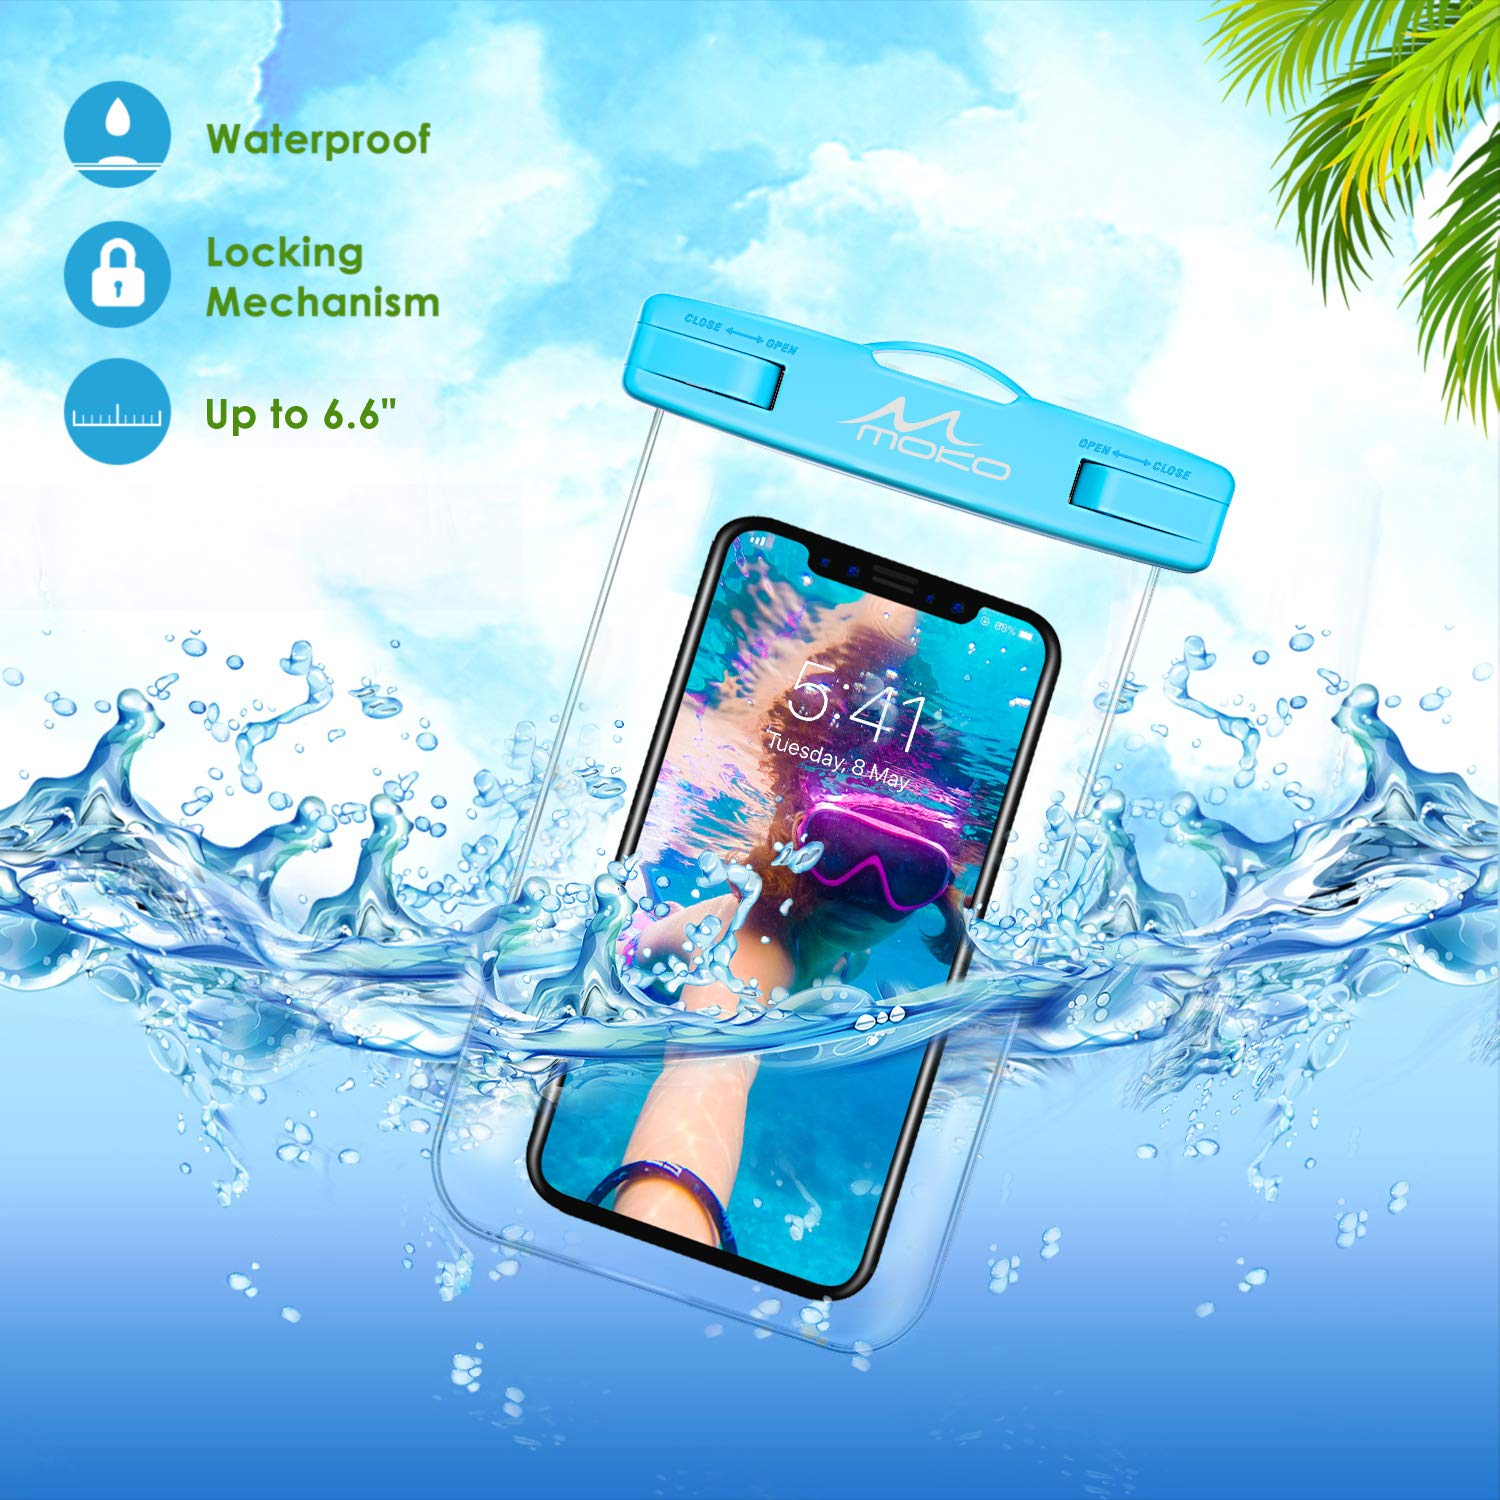 Underwater Clear Phone Case Dry Bag with Lanyard Compatible with iPhone 11//11 Pro Max Note 10//9//8 8//7//6 Plus A10E Samsung S10//S9//S8 Plus 2 Pack X//Xs//Xr//Xs Max S10e MoKo Waterproof Phone Pouch